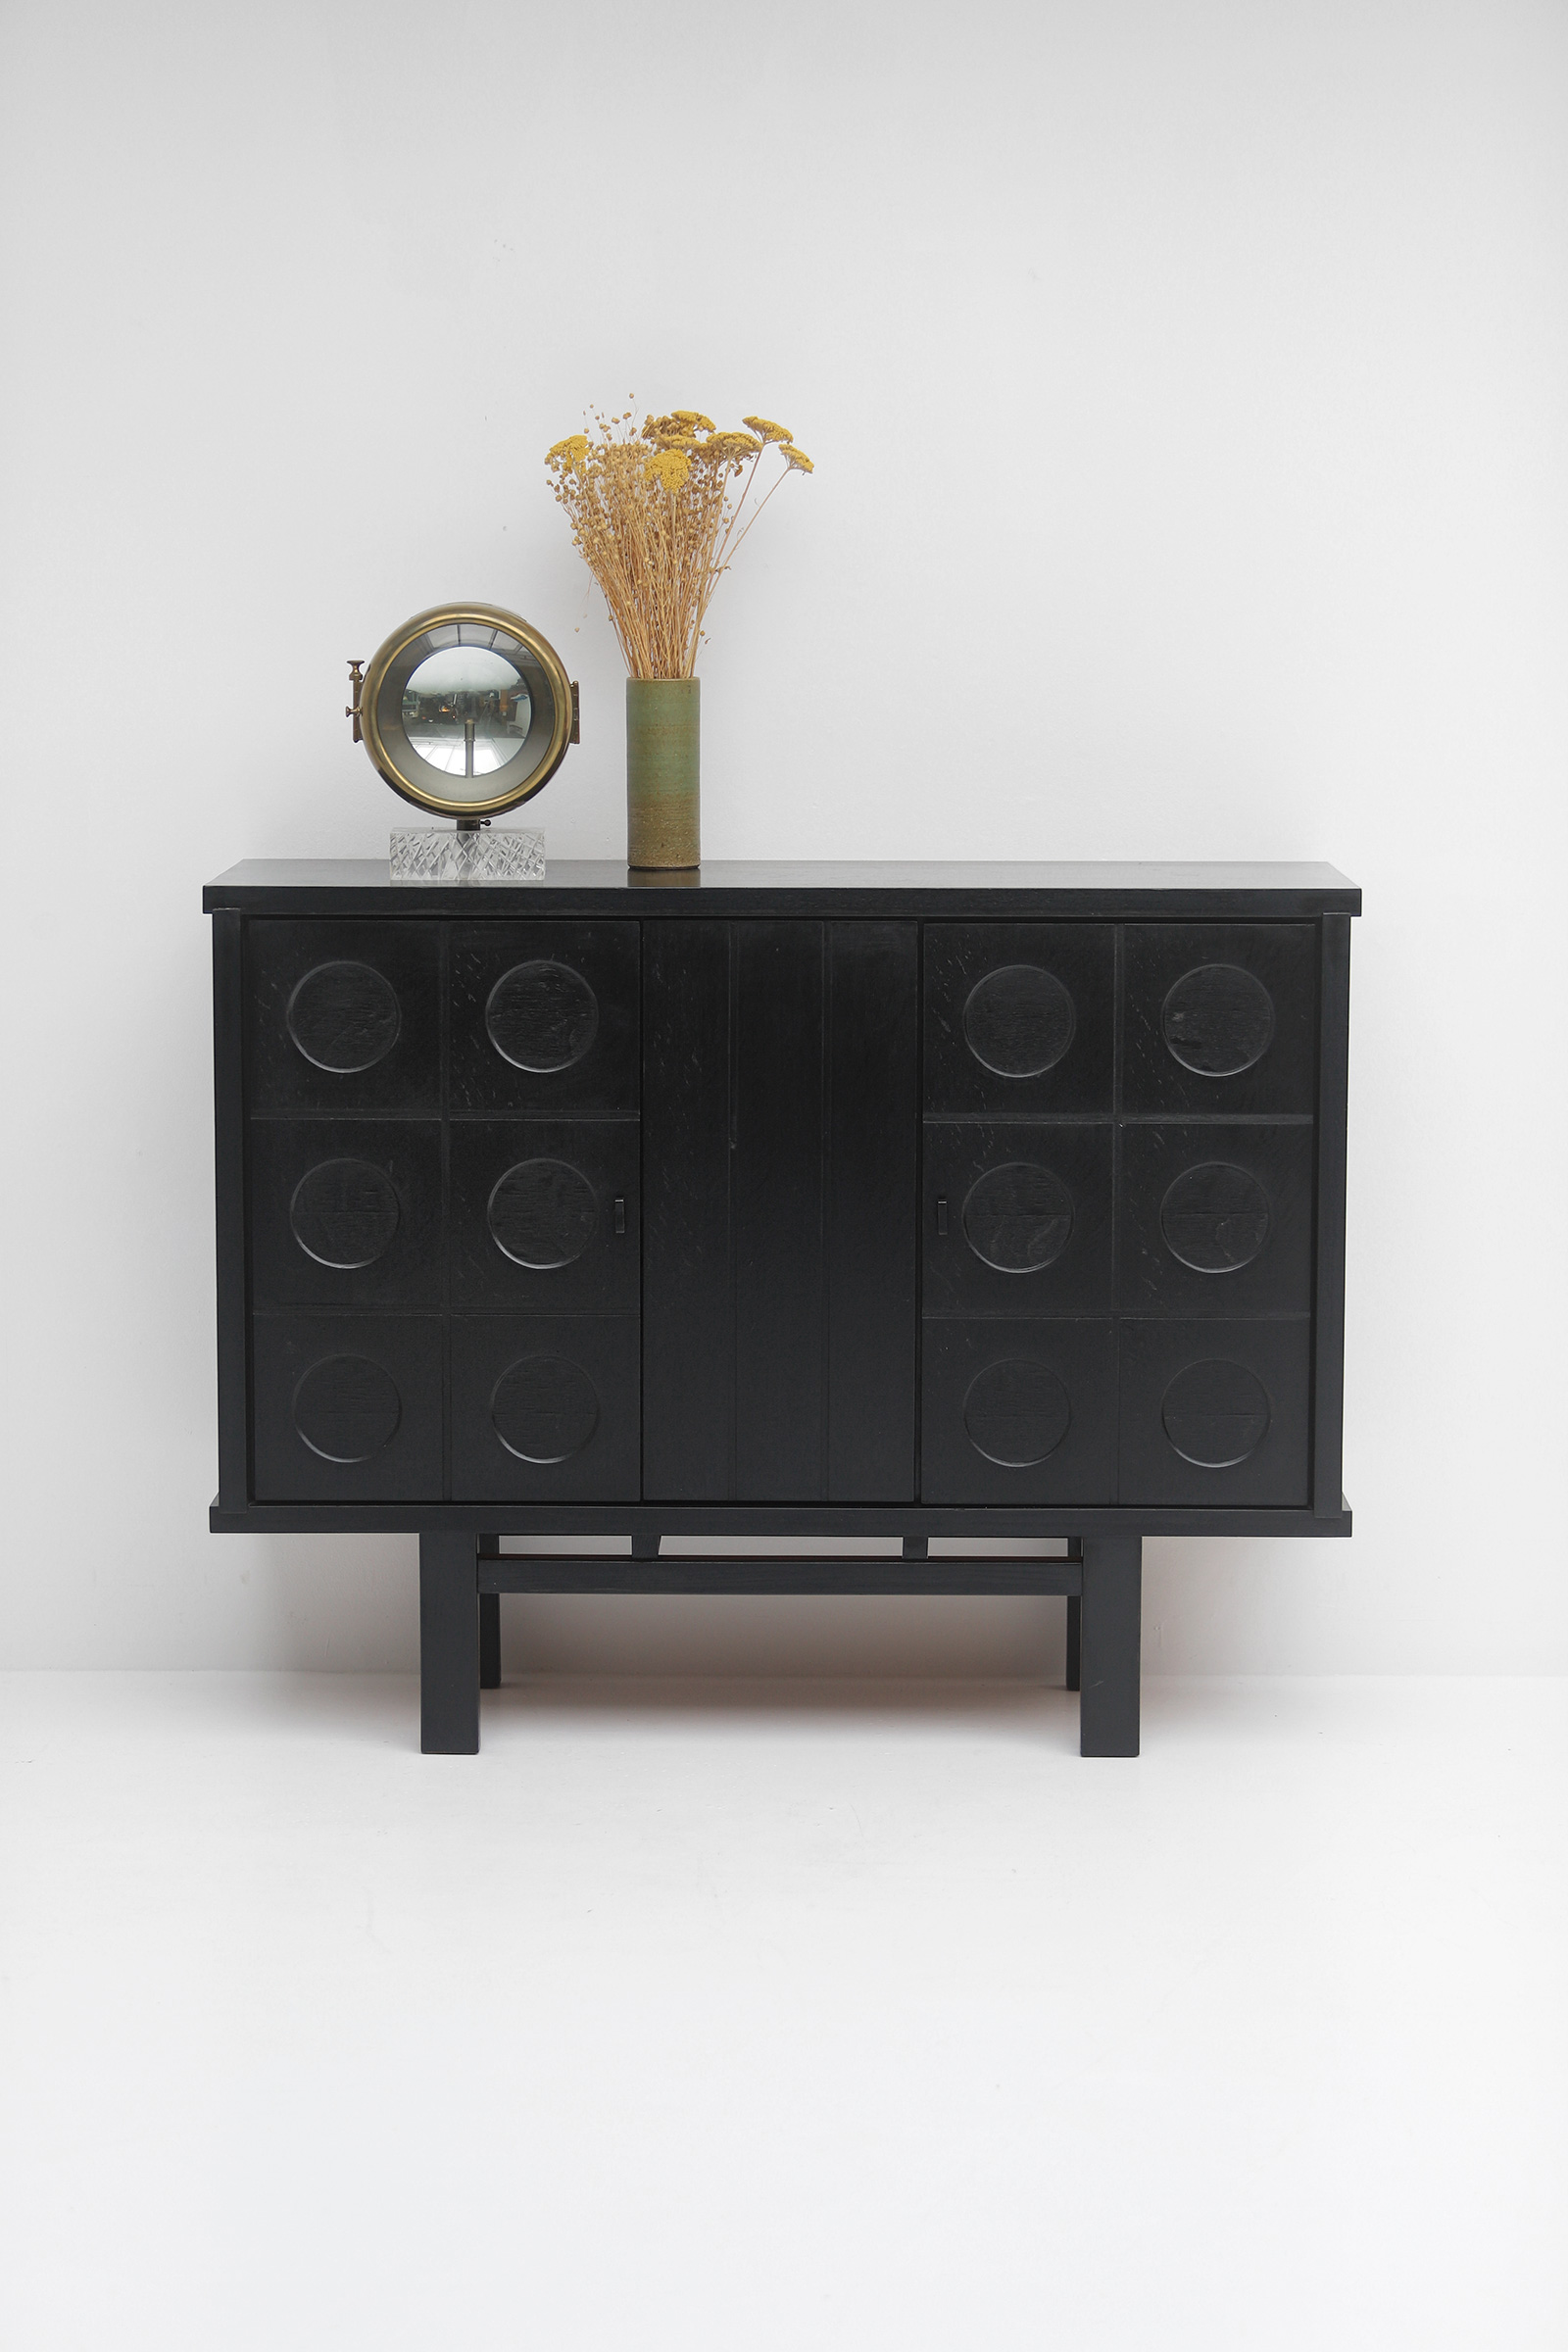 Decorative Black Cabinet with Patterned doors image 1